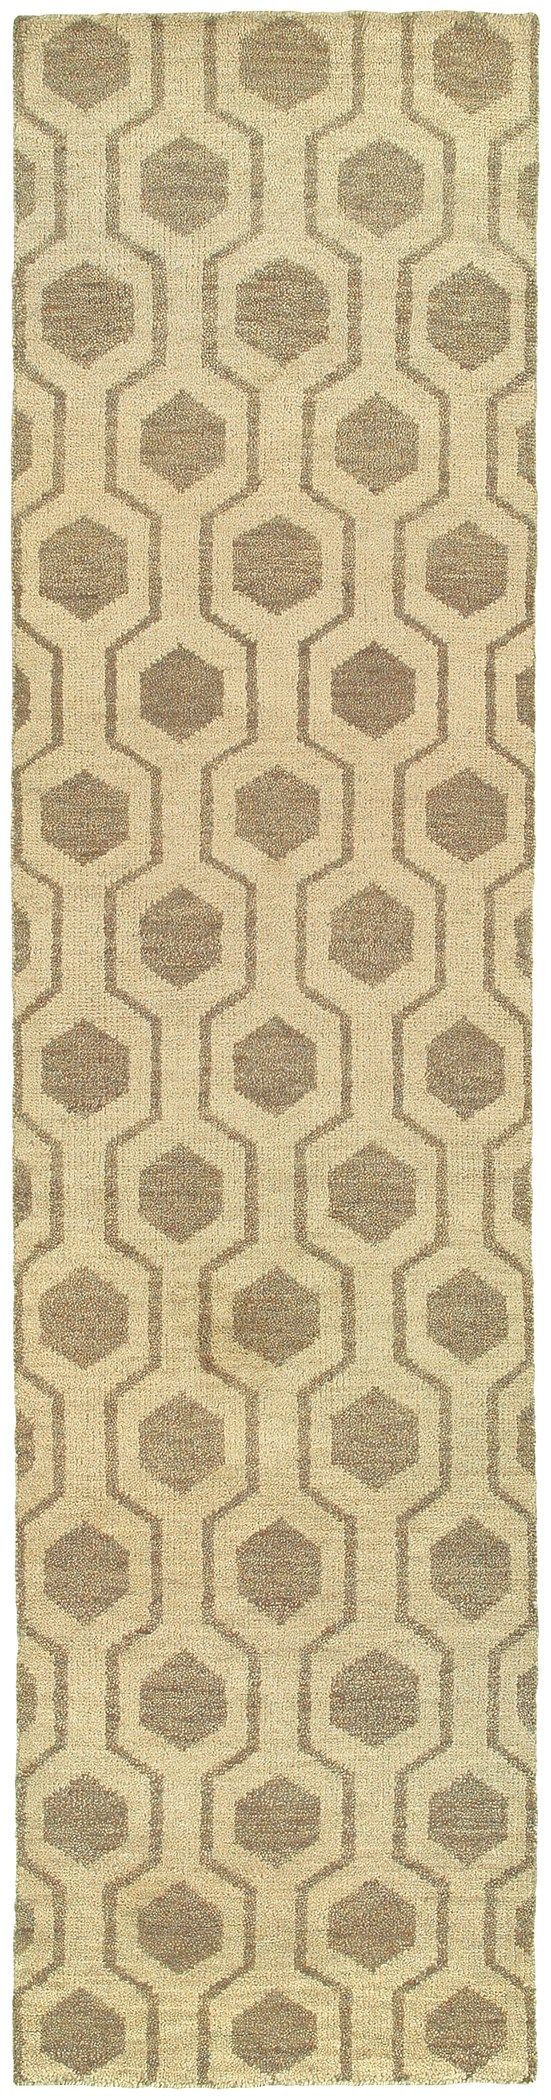 Beige, Stone Transitional Area Rug